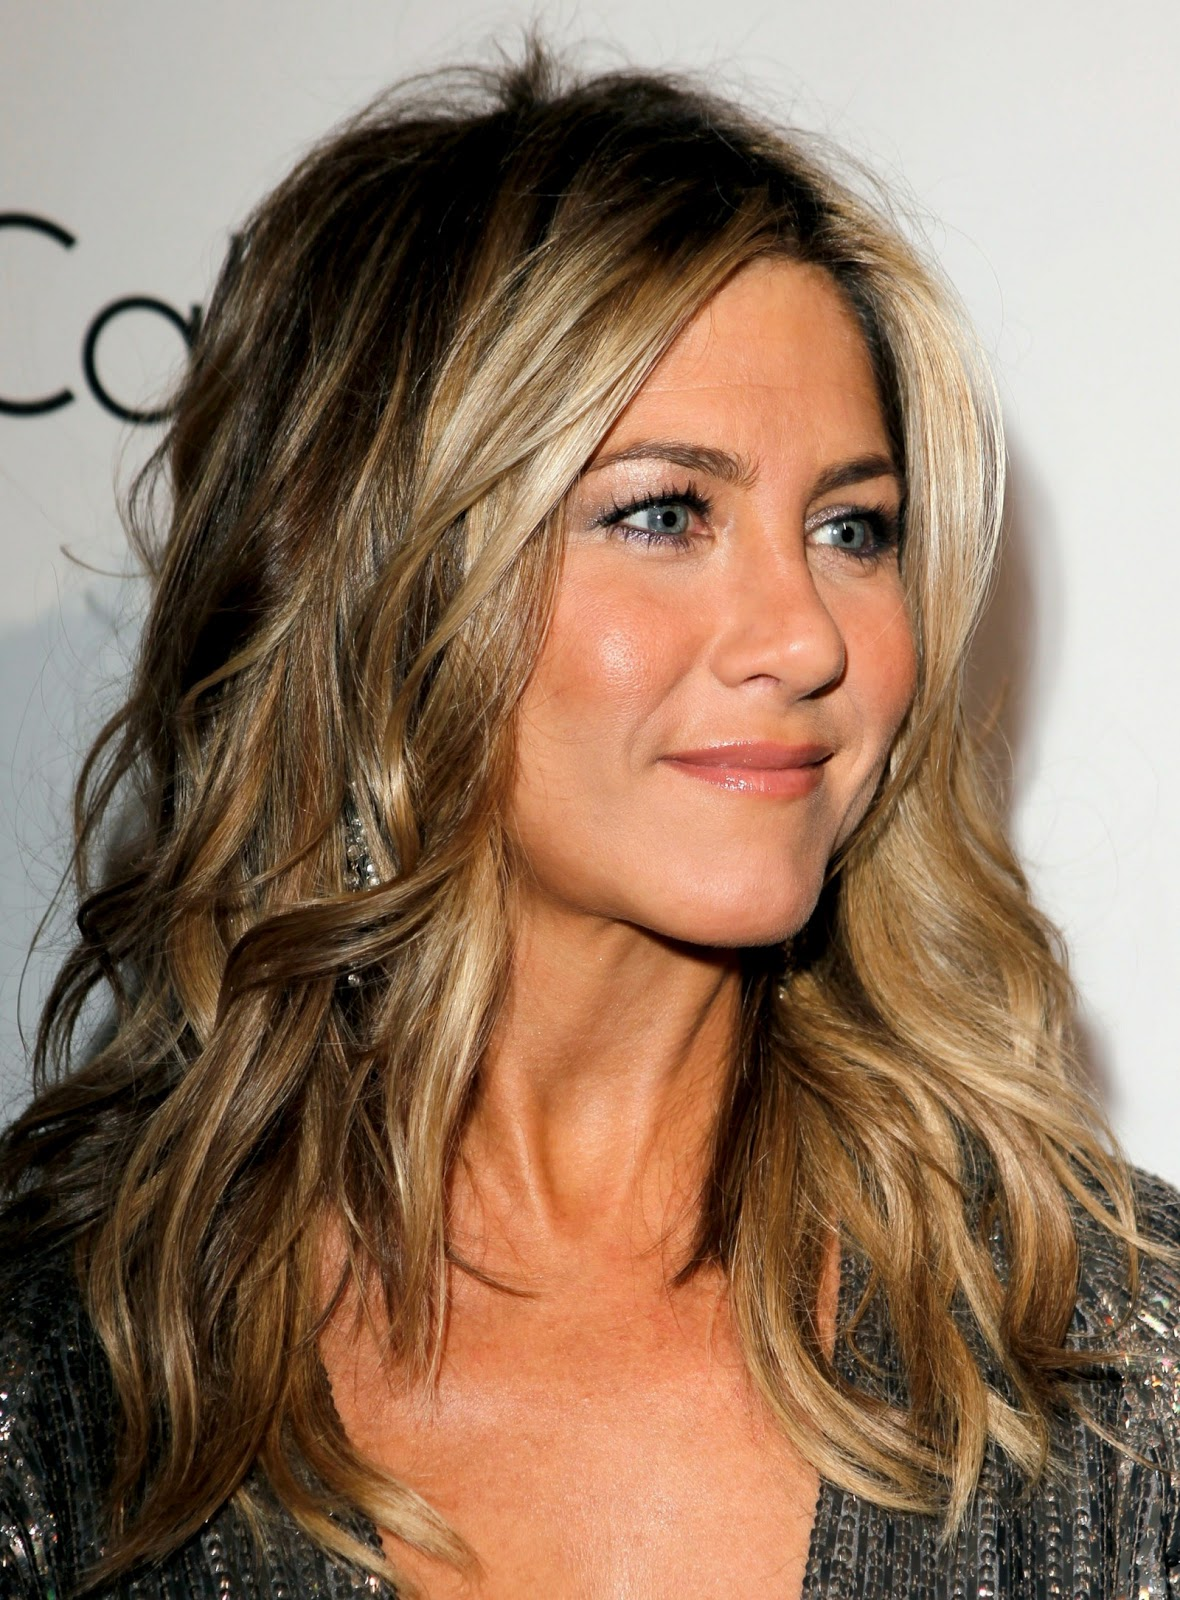 http://2.bp.blogspot.com/-7viumaOOrAs/TqQRWX_qu9I/AAAAAAAAA70/FwPeSWxhjMM/s1600/Jennifer-Aniston-6Jennifer+Aniston+%25E2%2580%2593+ELLE+18th+Annual+Women+in+Hollywood+Tribute.jpg